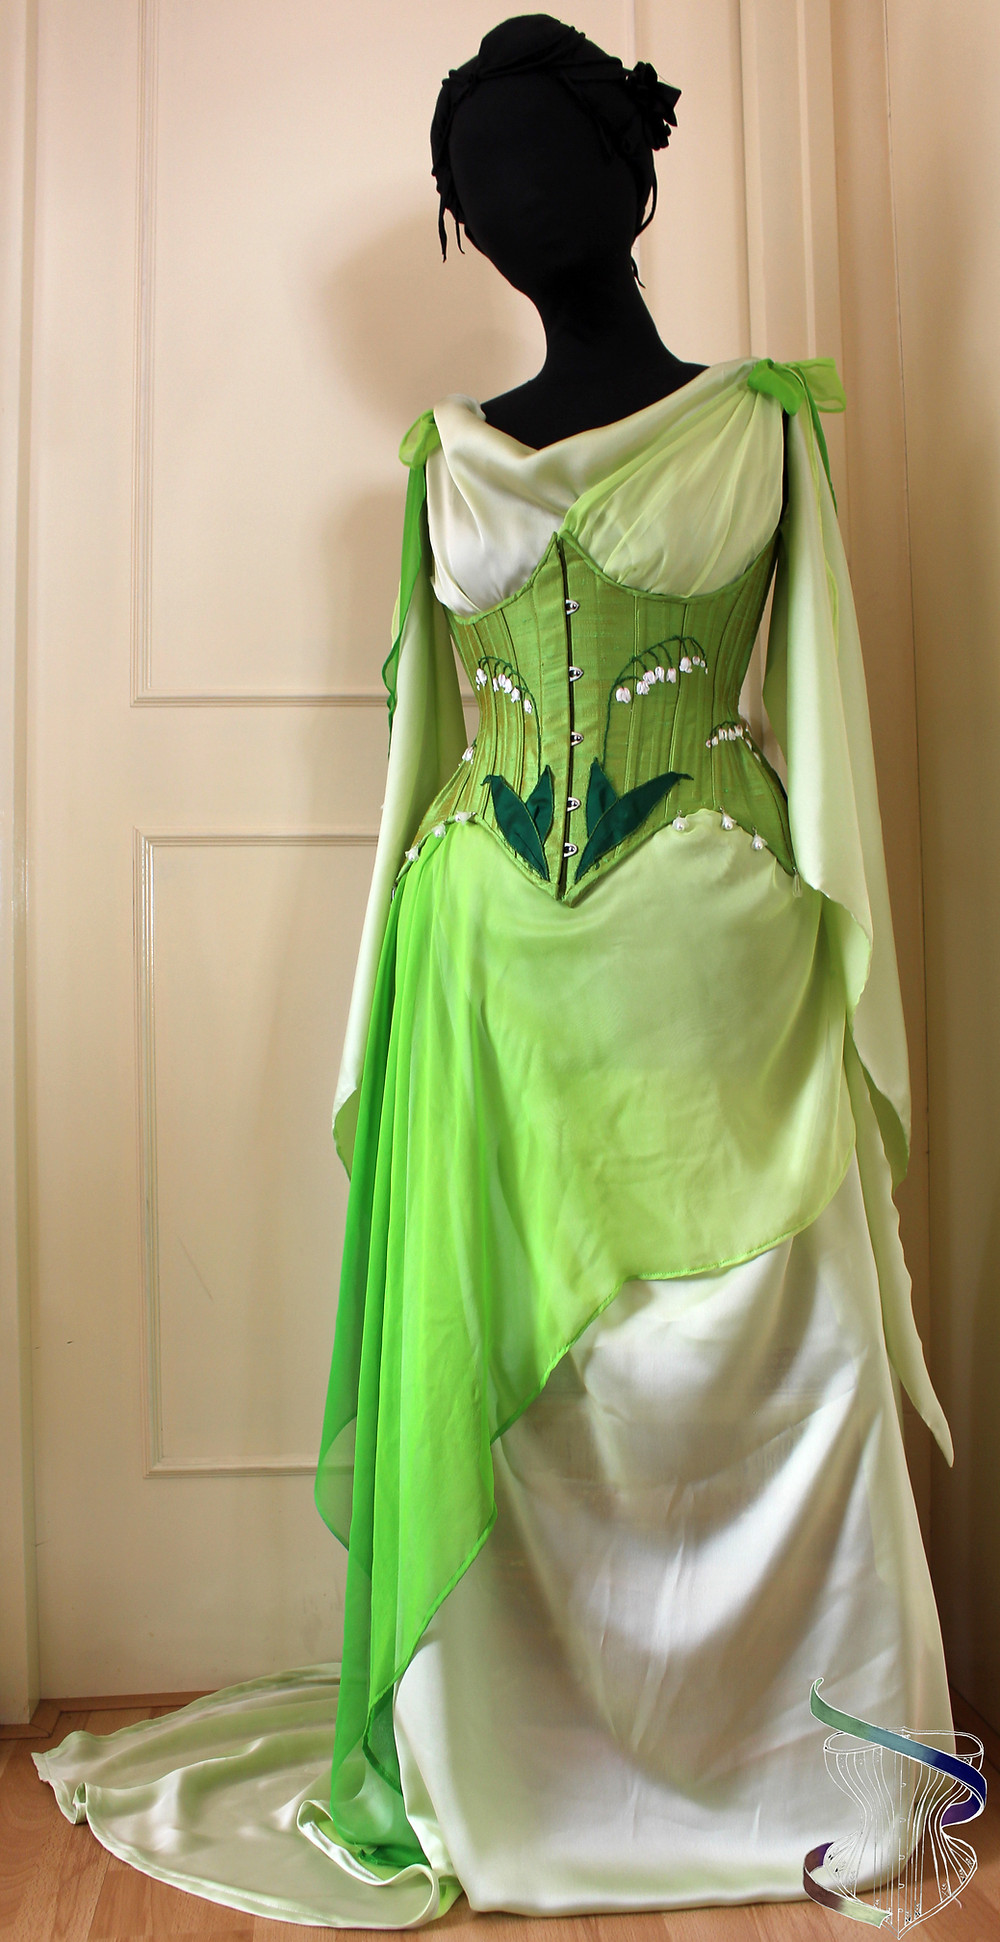 lily of the valley corset and gown